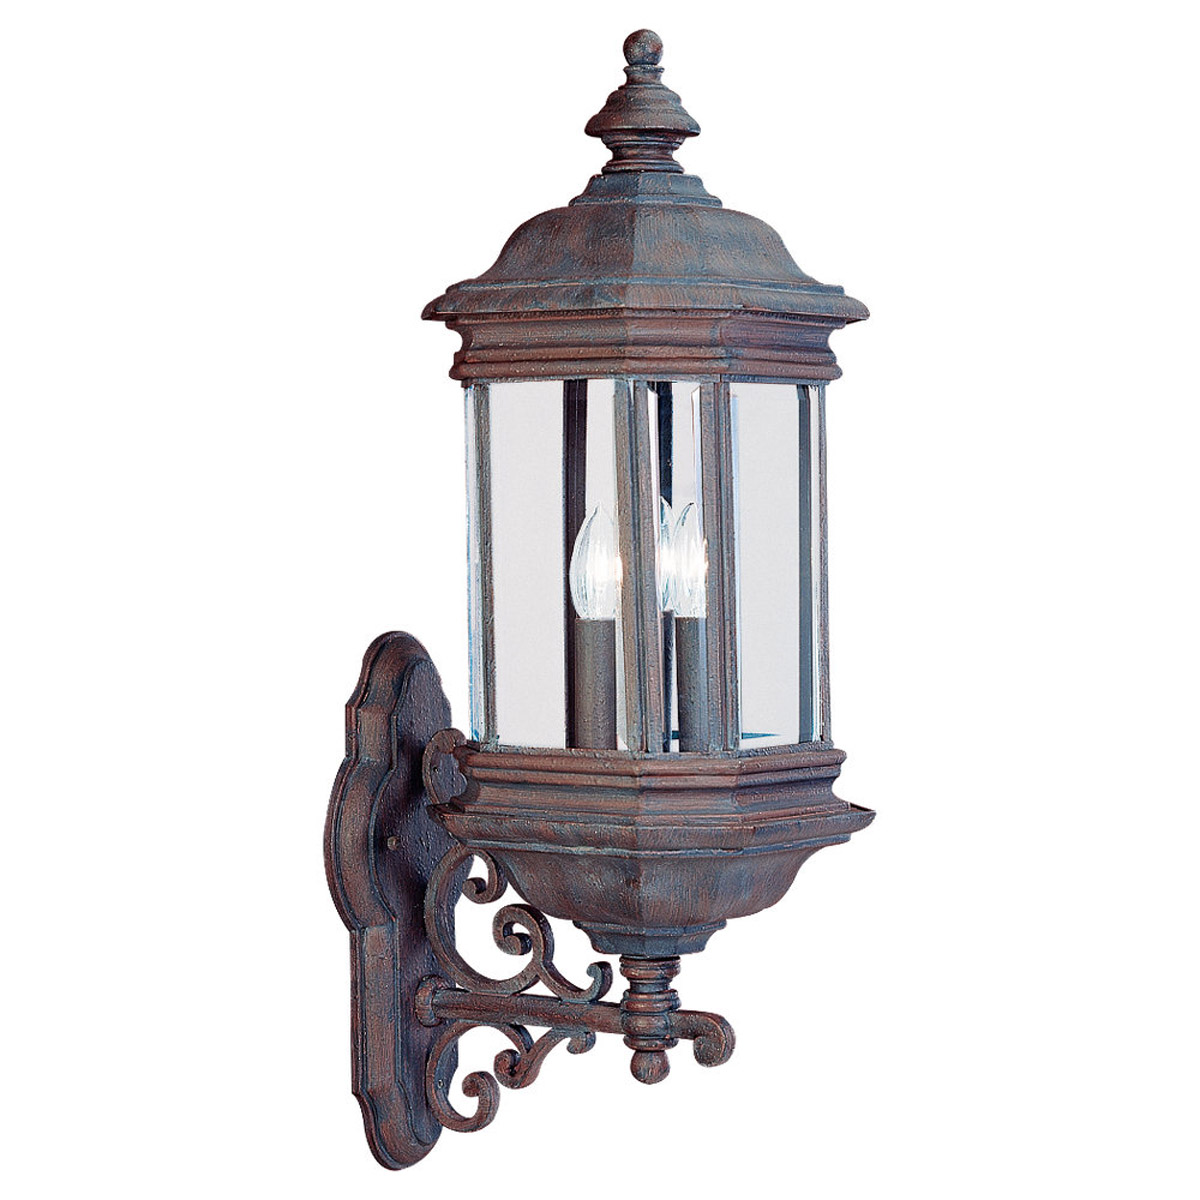 Sea Gull Lighting Hill Gate 3 Light Outdoor Wall Lantern in Textured Rust Patina 8839-08 photo